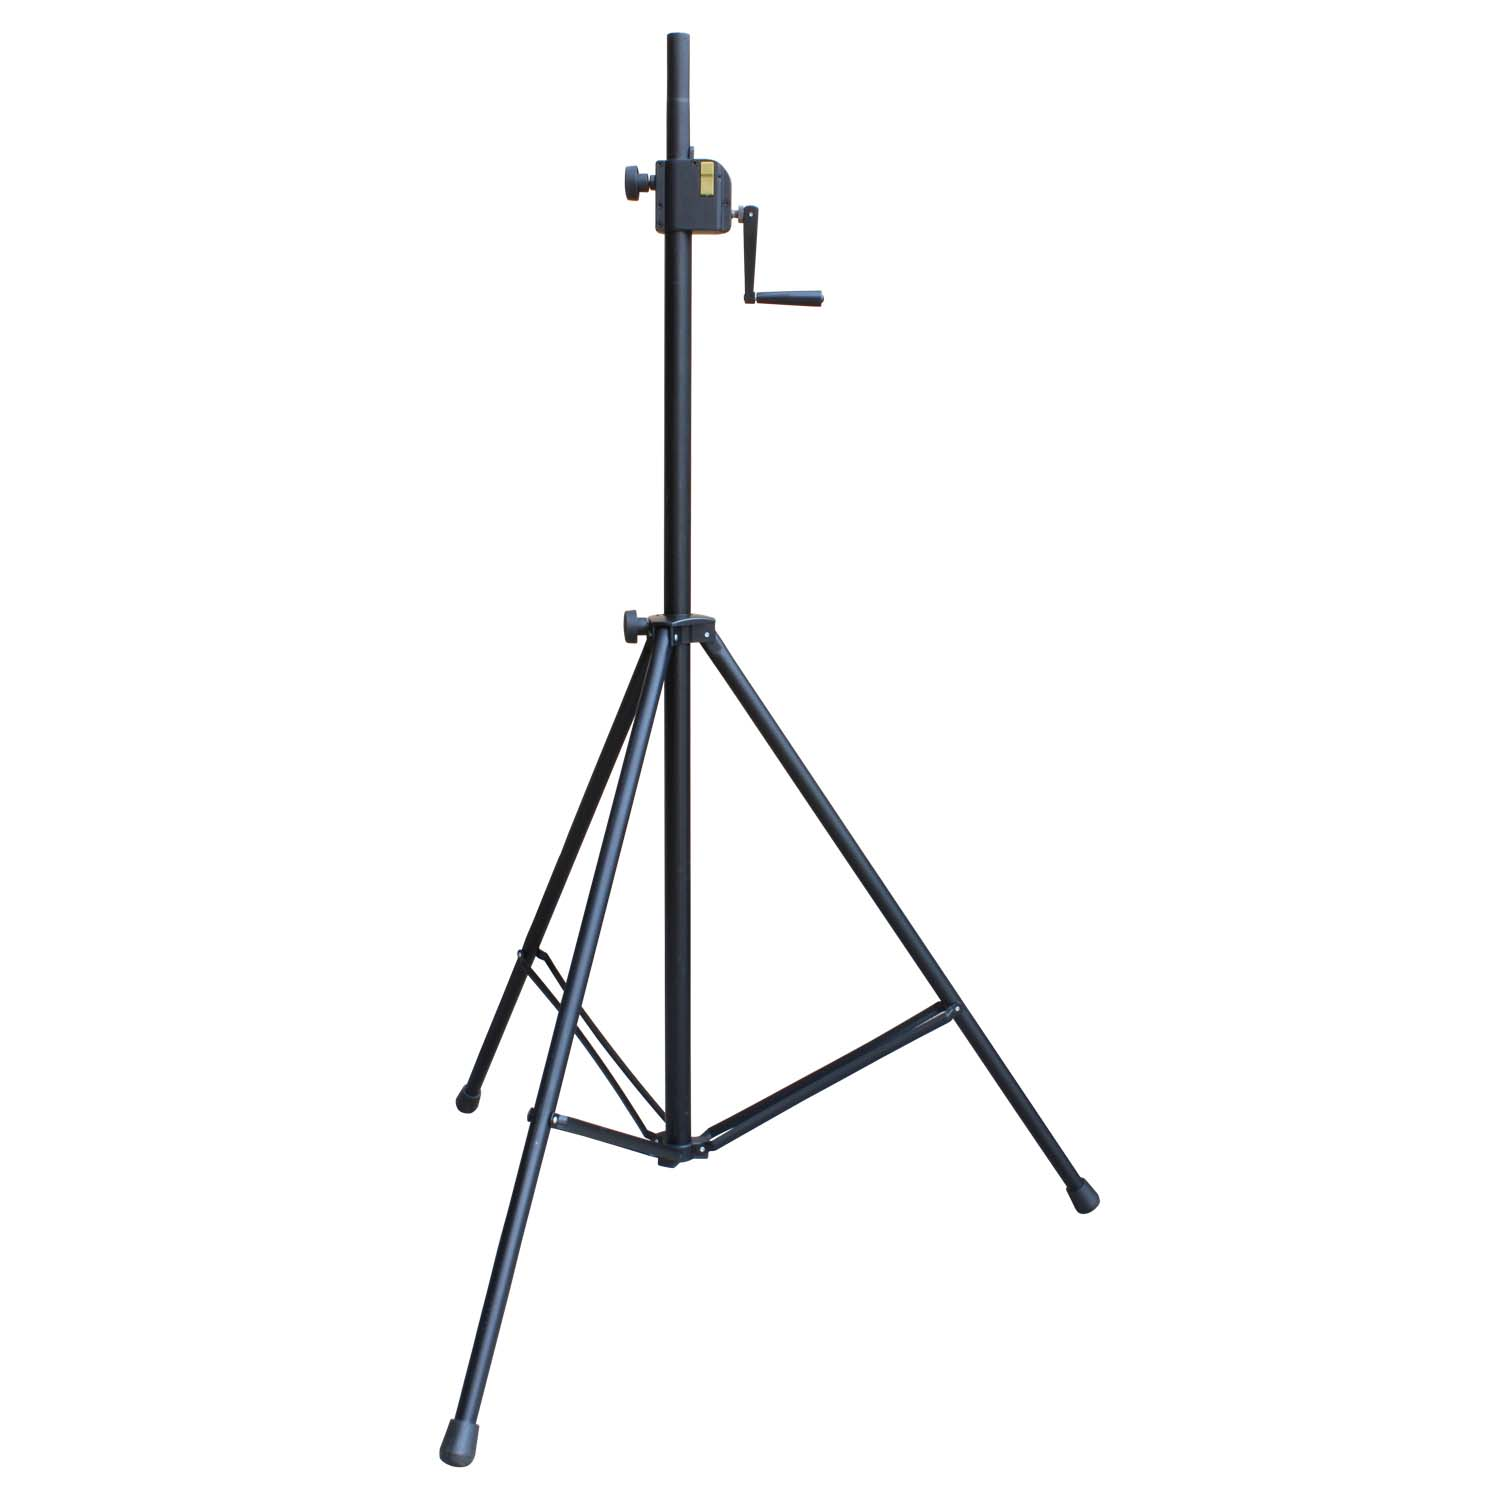 Shop Soiled Rockstand Rs Heavy Duty Speaker Stand